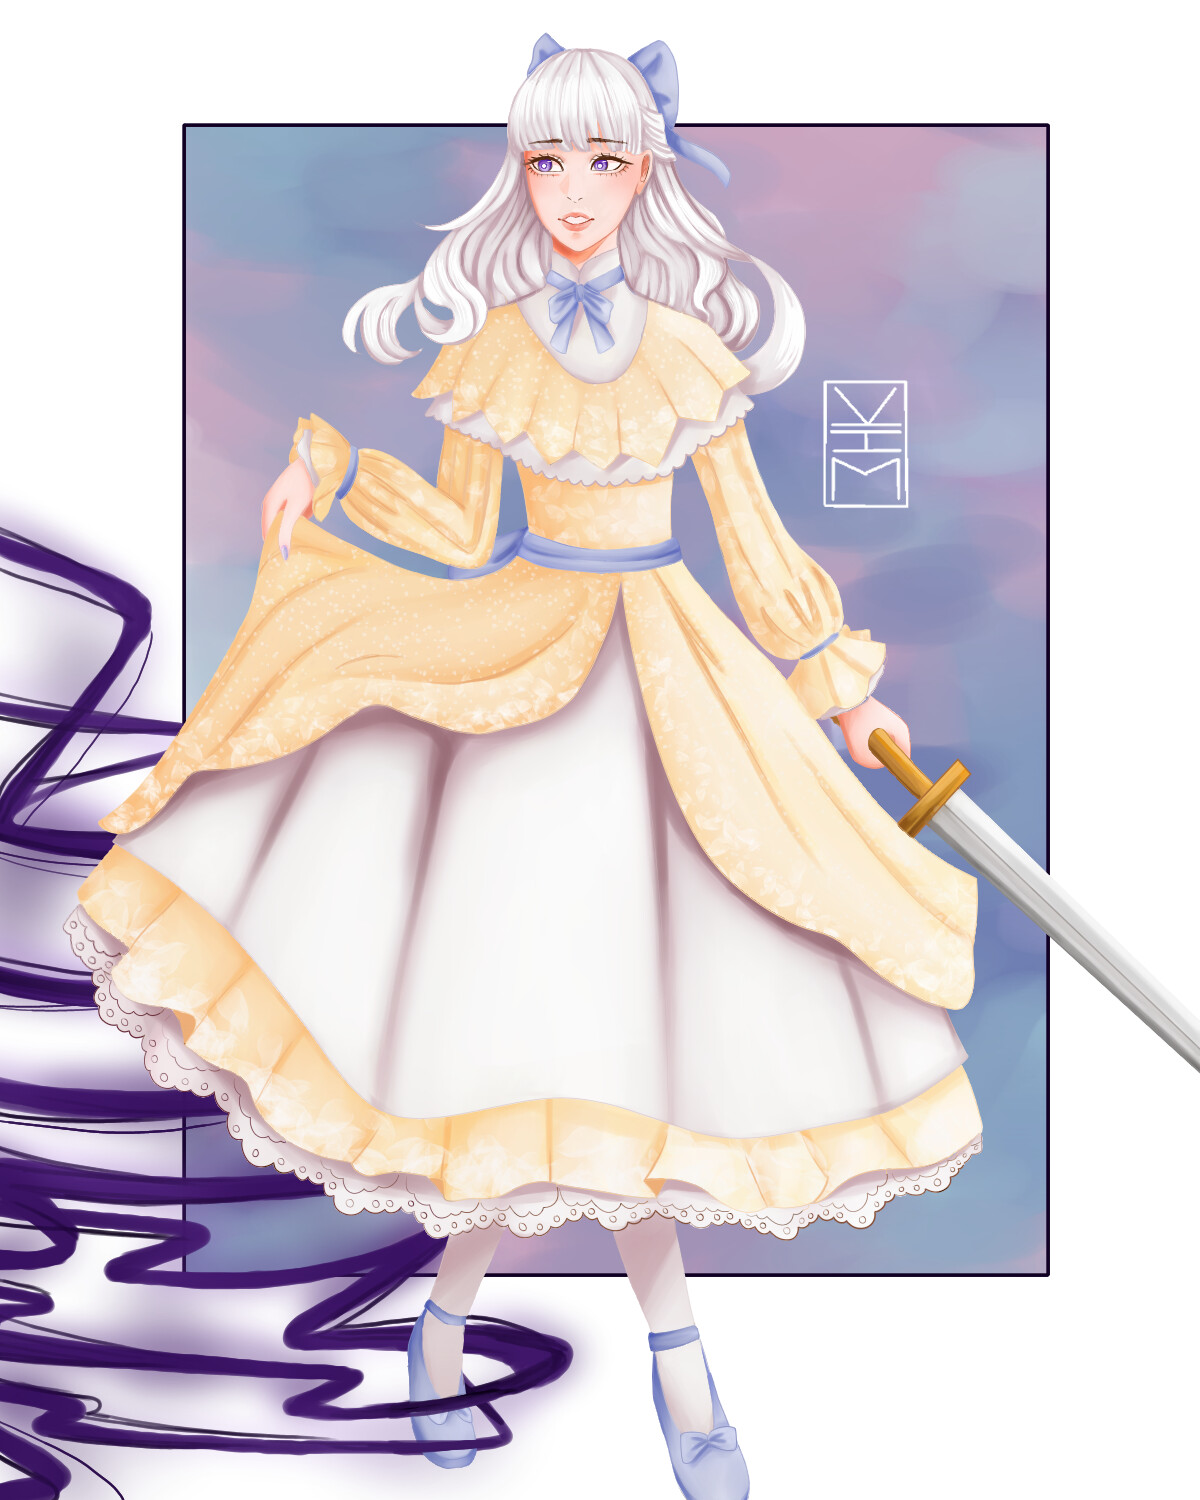 Kimsan Hamiaux Leslie From The Delitoon The Monster Duchess And Contract Princess You should give them a visit if you're looking for similar novels to read. kimsan hamiaux leslie from the